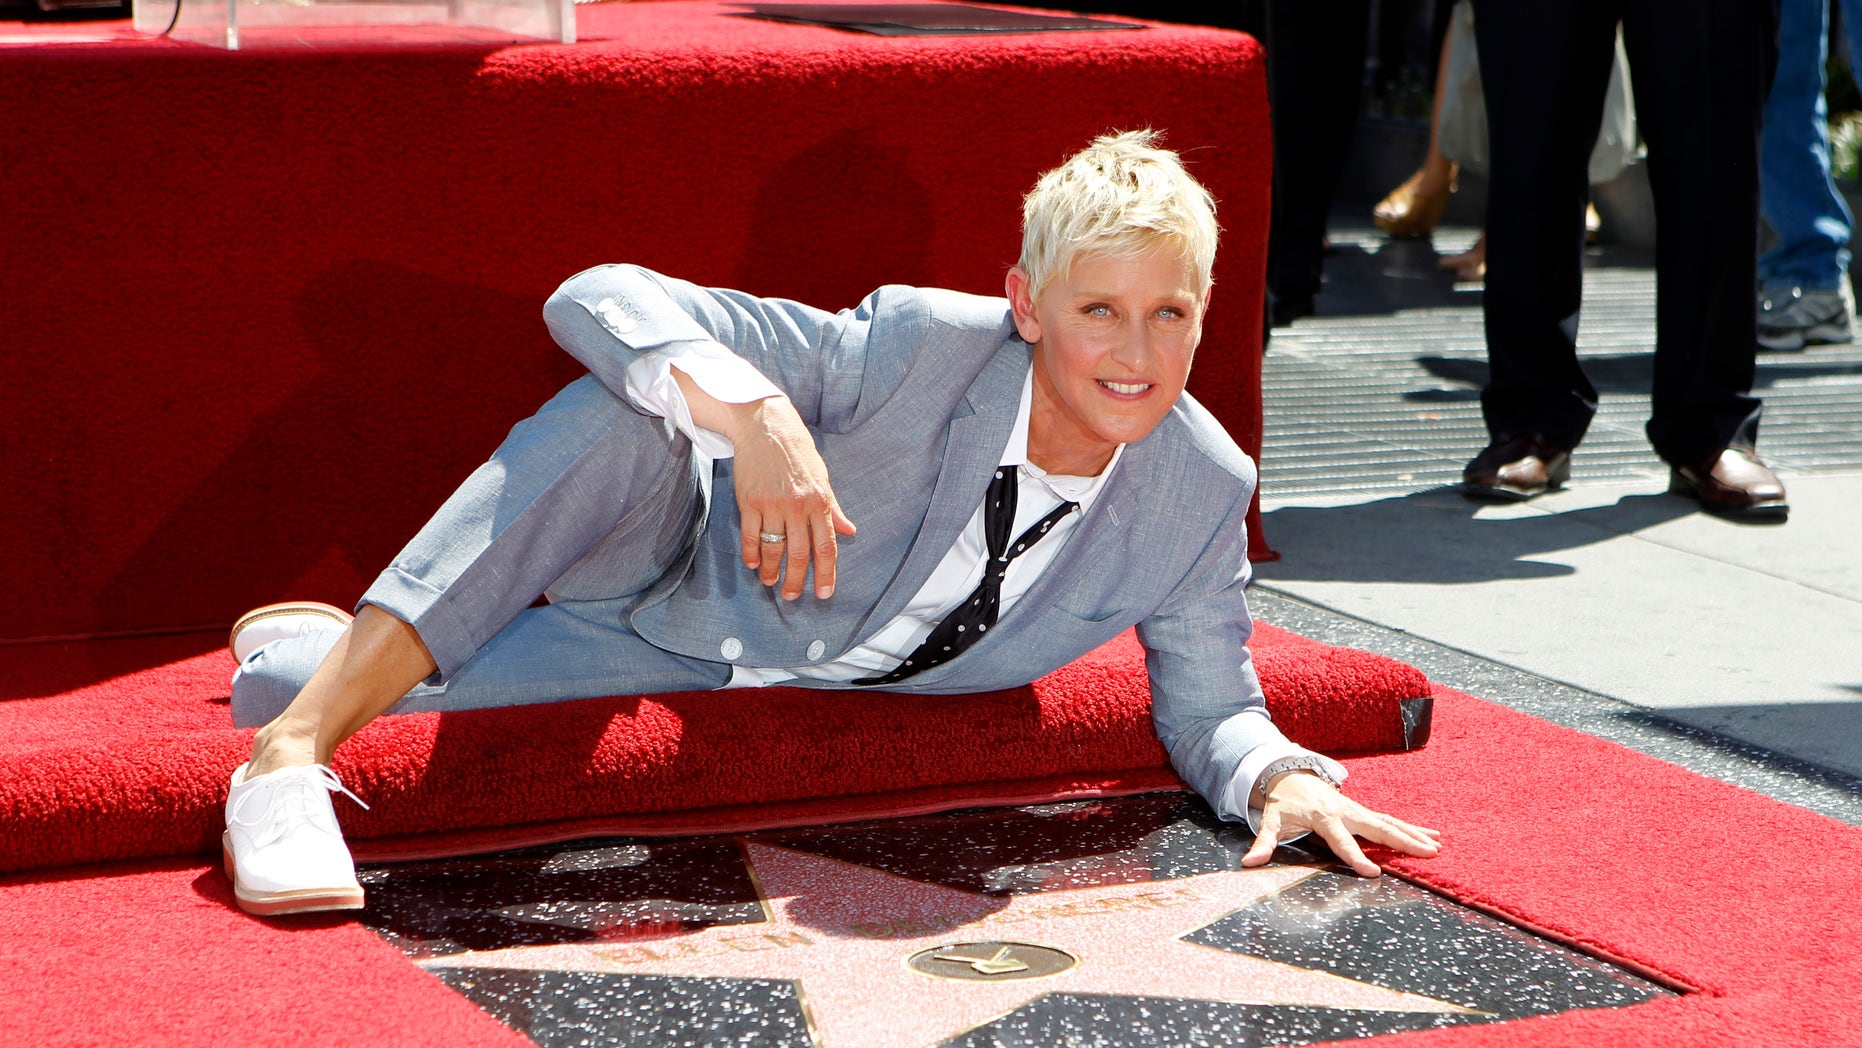 Television personality Ellen DeGeneres poses by her star after it was unveiled on the Walk of Fame in Hollywood, California September 4, 2012. REUTERS/Mario Anzuoni (UNITED STATES - Tags: ENTERTAINMENT) - RTR37HN3